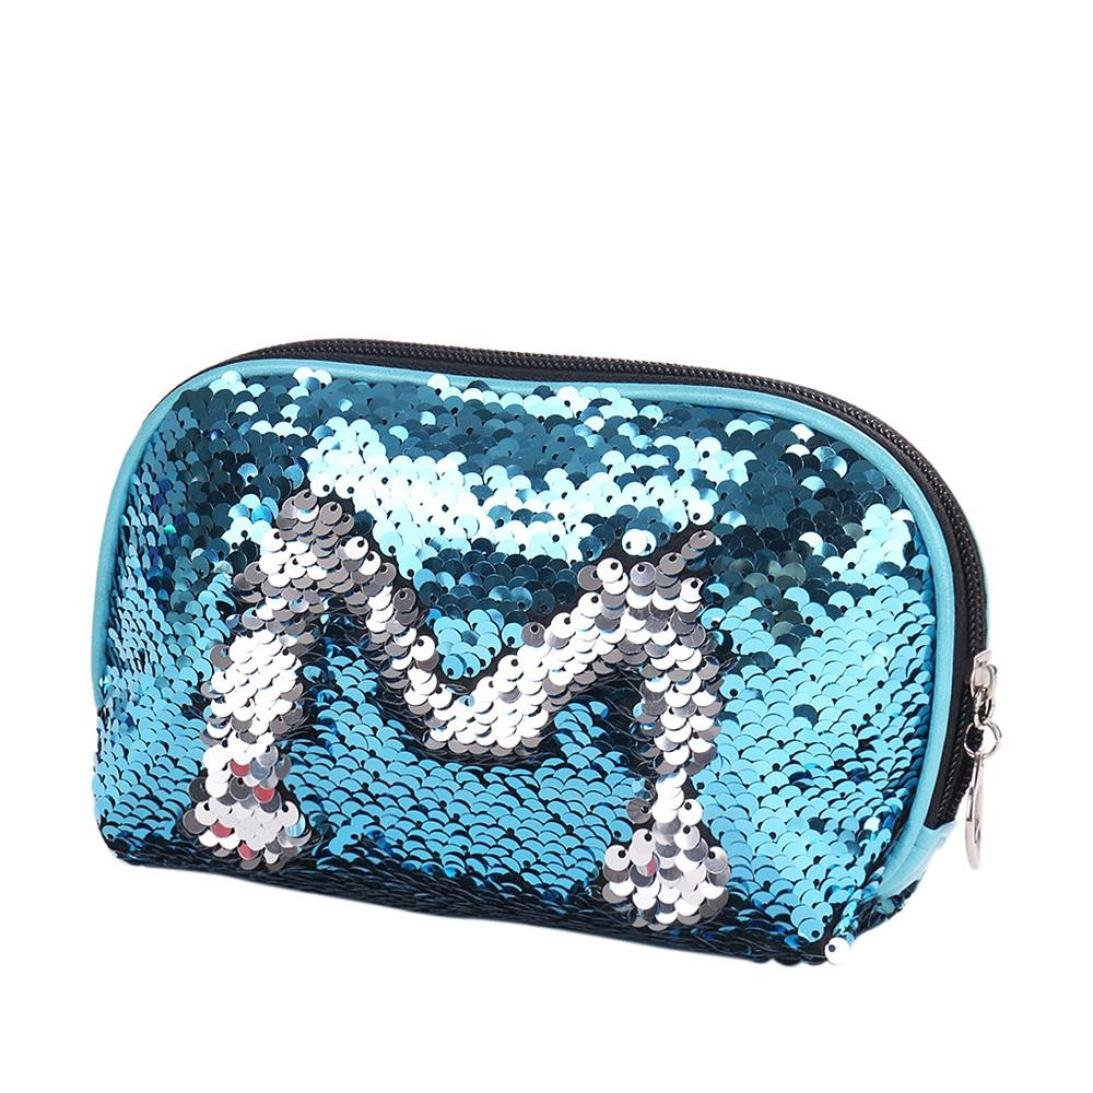 YJYdada Mermaid Sequin Pencil Case Cosmetic Makeup Coin Pouch Storage Zipper Purse (Sky Blue)